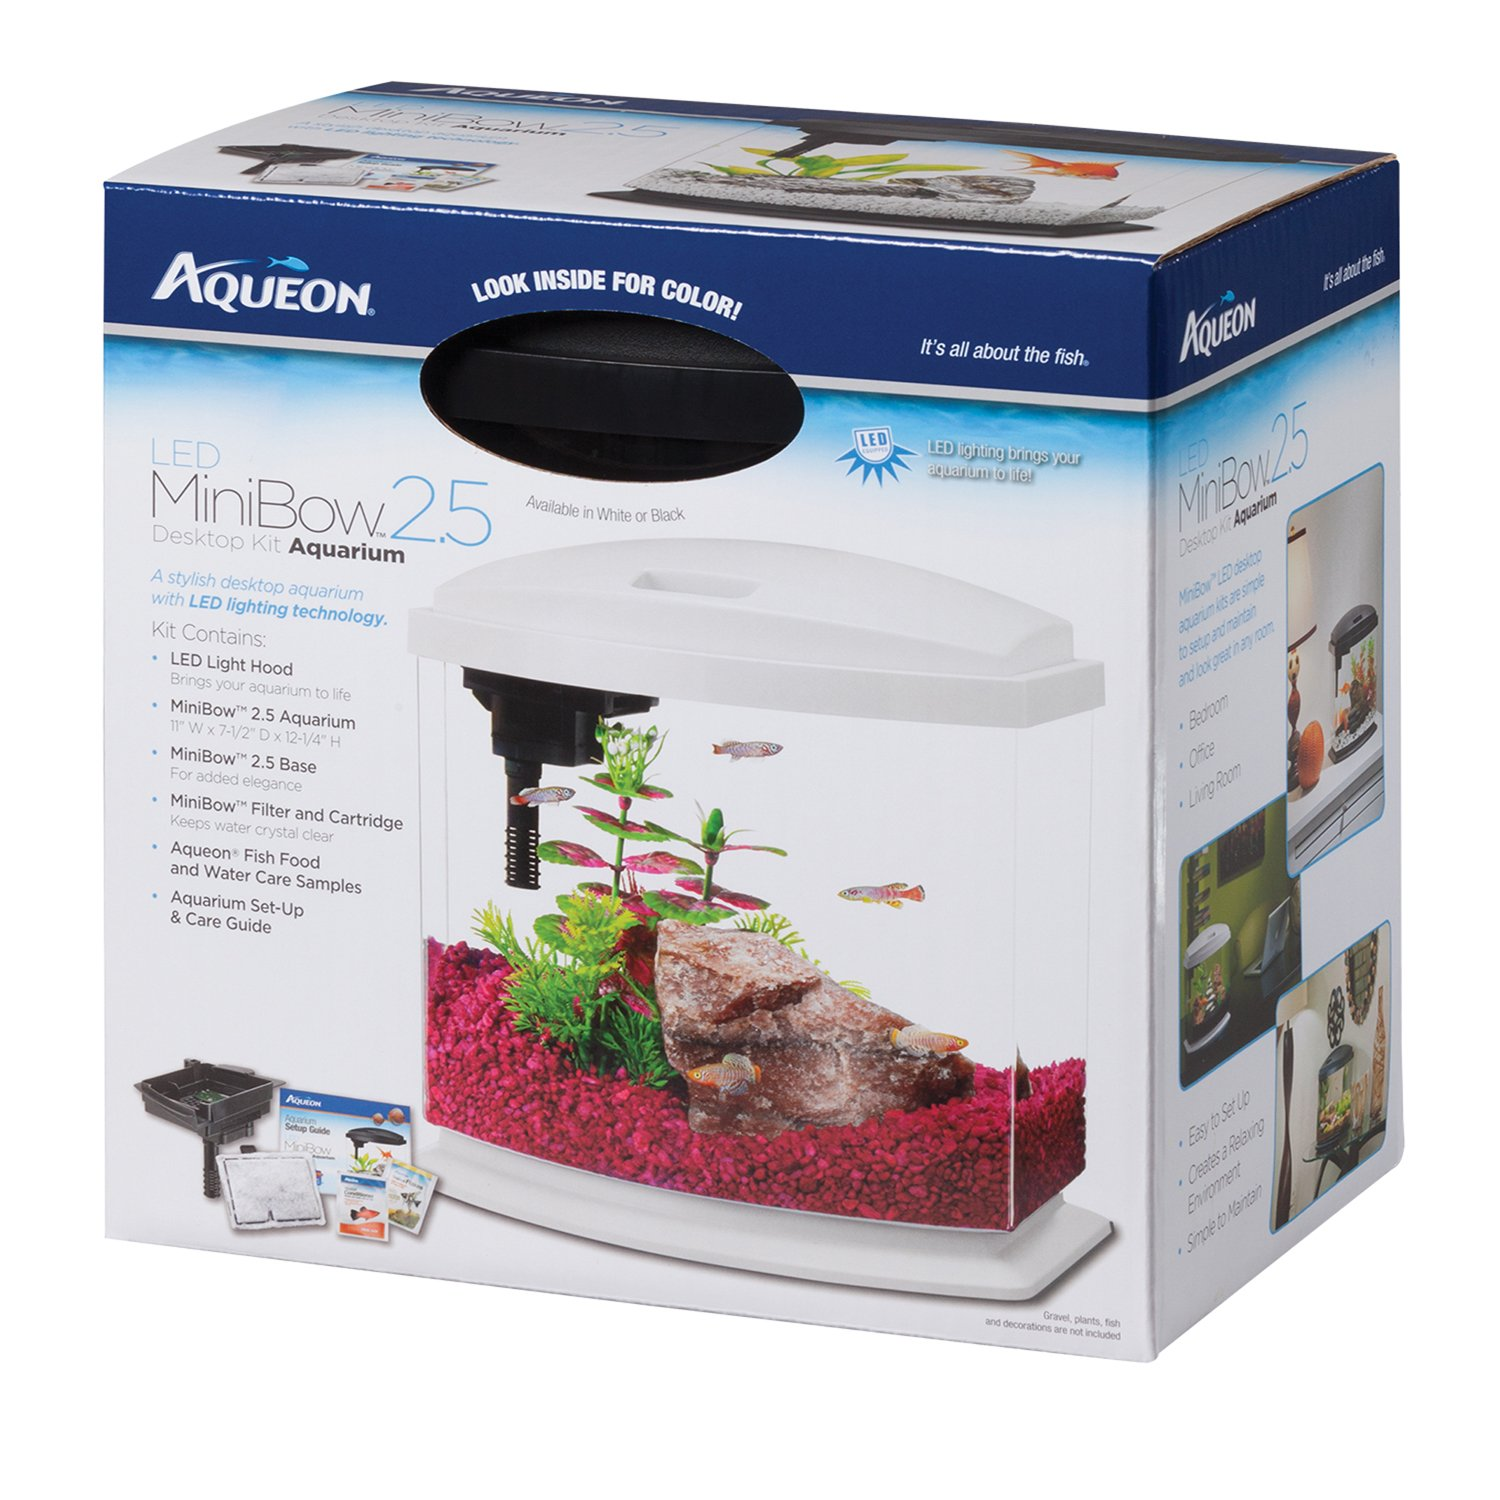 Cool Aquariums For Sale Fish Tanks Saltwater Freshwater Aquariums Supplies Petco